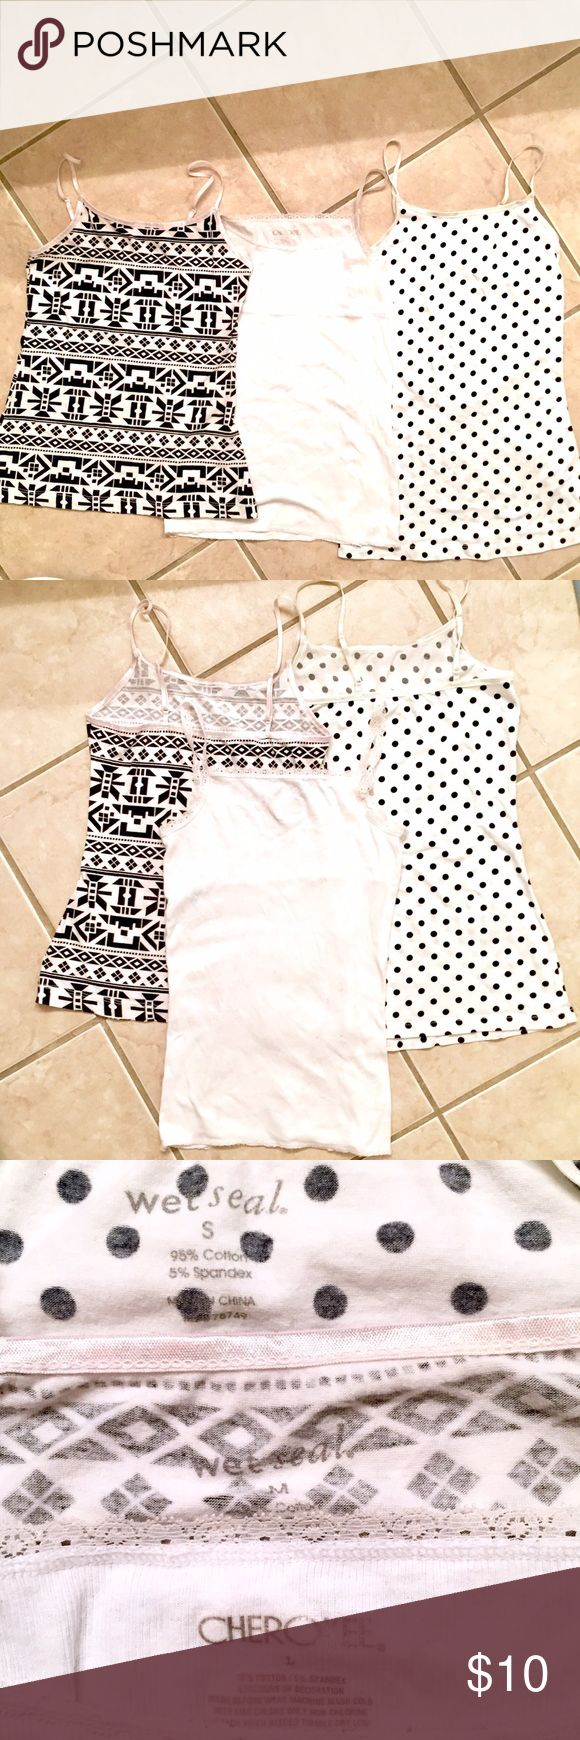 BLACK & WHITE CAMI BUNDLE Three cute camisoles made of cotton/spandex blends. Polka dot is Size Small & tribal print is Size Medium both from Wet Seal. White lace trimmed cami is Size Large (but fits the same as the polka dot cami) by Cherokee! Wet Seal Tops Camisoles